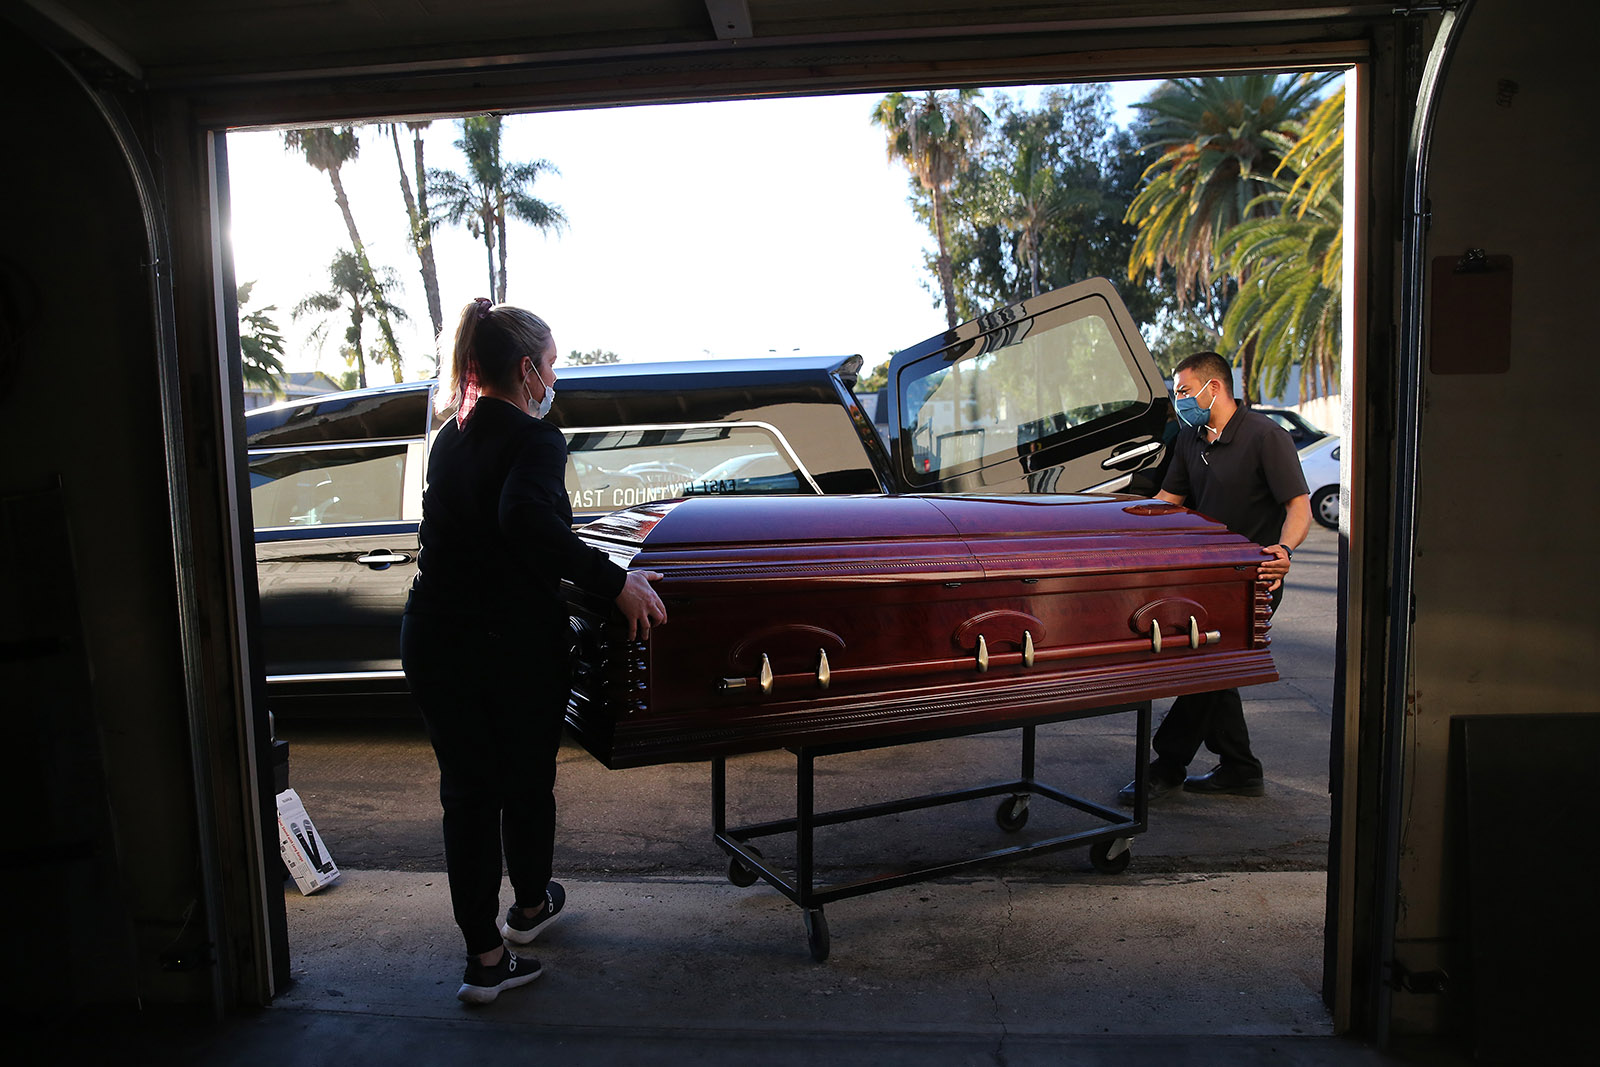 Funeral service workers load the casket of a person who died after contracting Covid-19 into a hearse at East County Mortuary on January 15, in El Cajon, California.